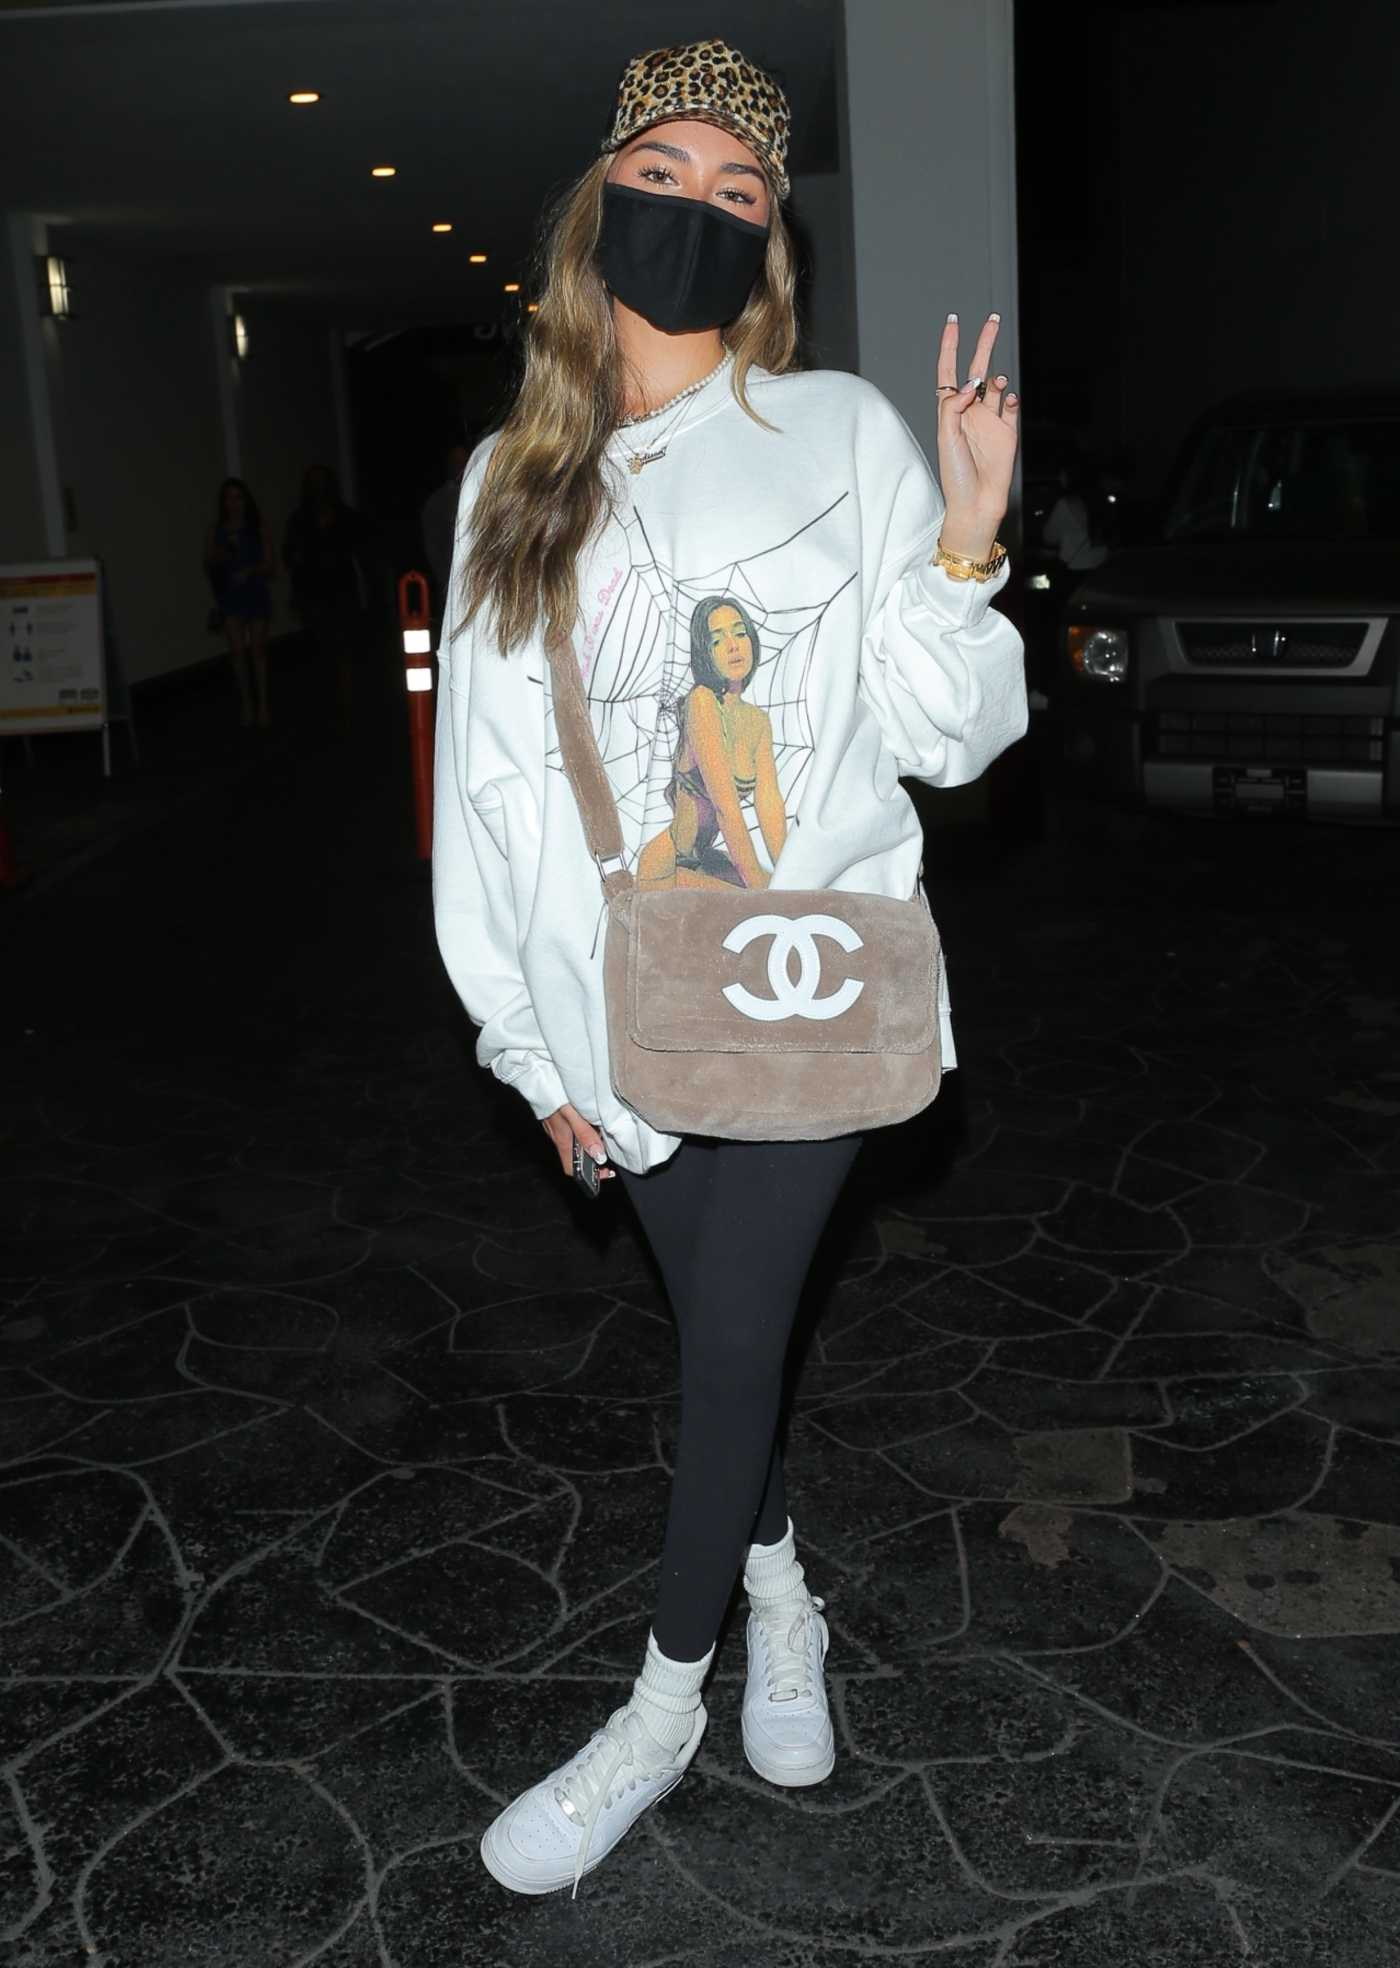 Madison Beer in a White Sweatshirt Enjoys a Dinner Date in Beverly Hills 08/27/2020